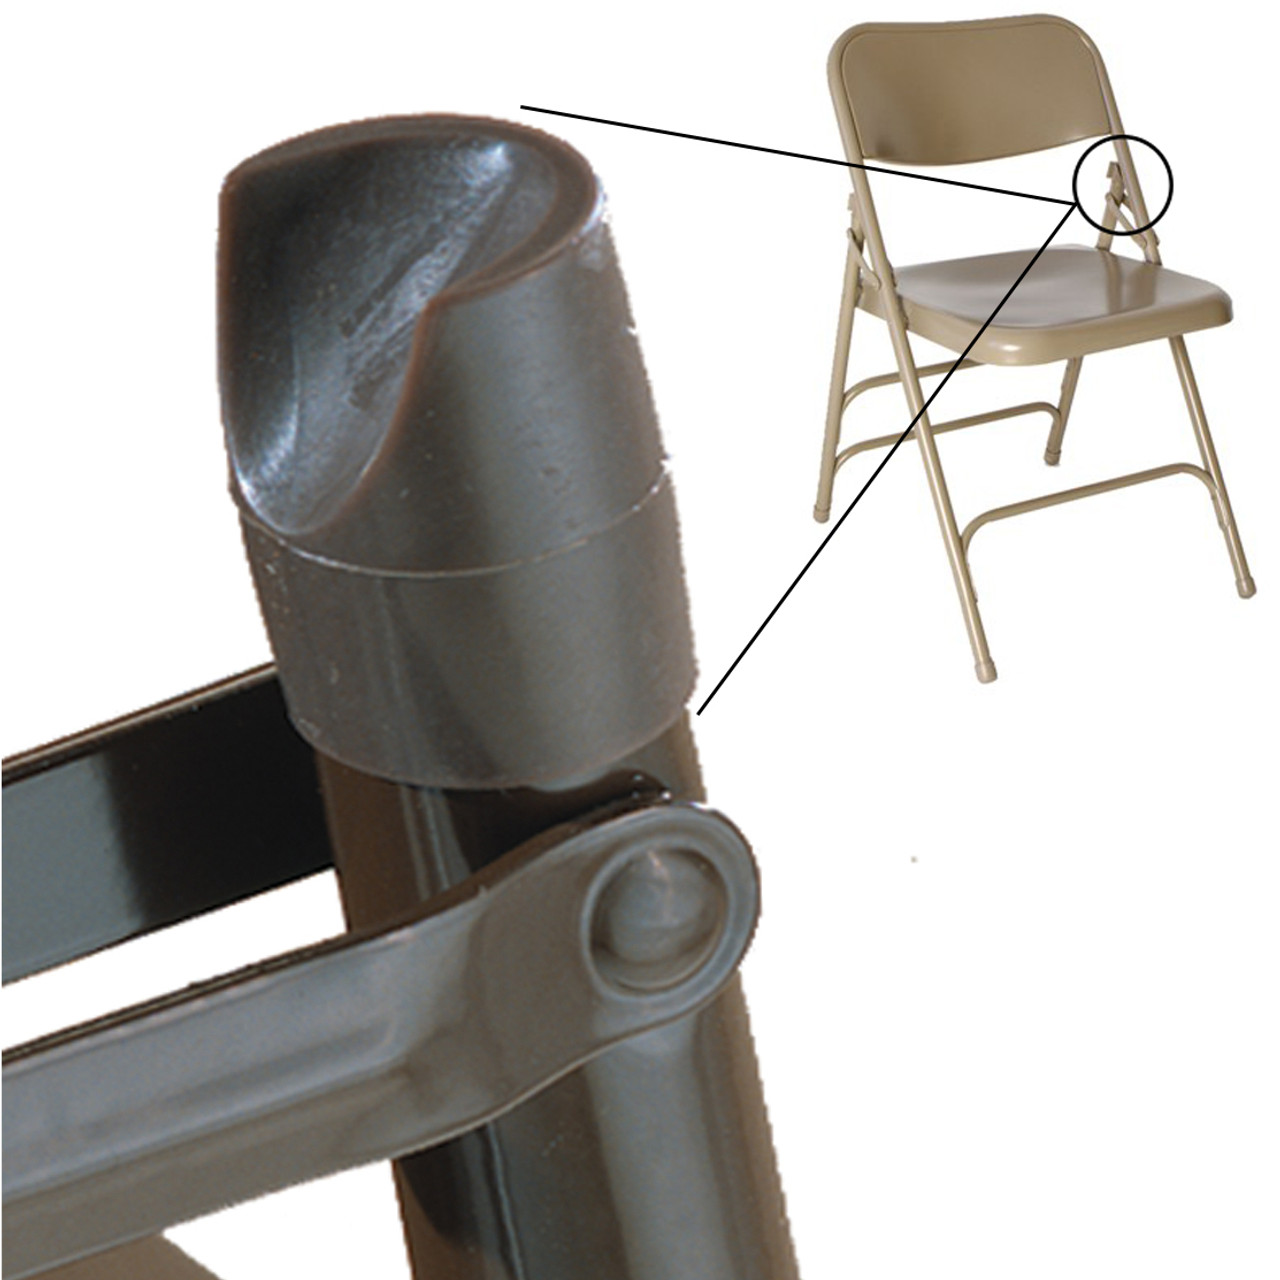 ... Inidual Pieces - Plastic Stability Caps for Metal and Padded Folding Chairs Fits 7/ ...  sc 1 st  FoldingChairsandTables.com : foling chairs - Cheerinfomania.Com